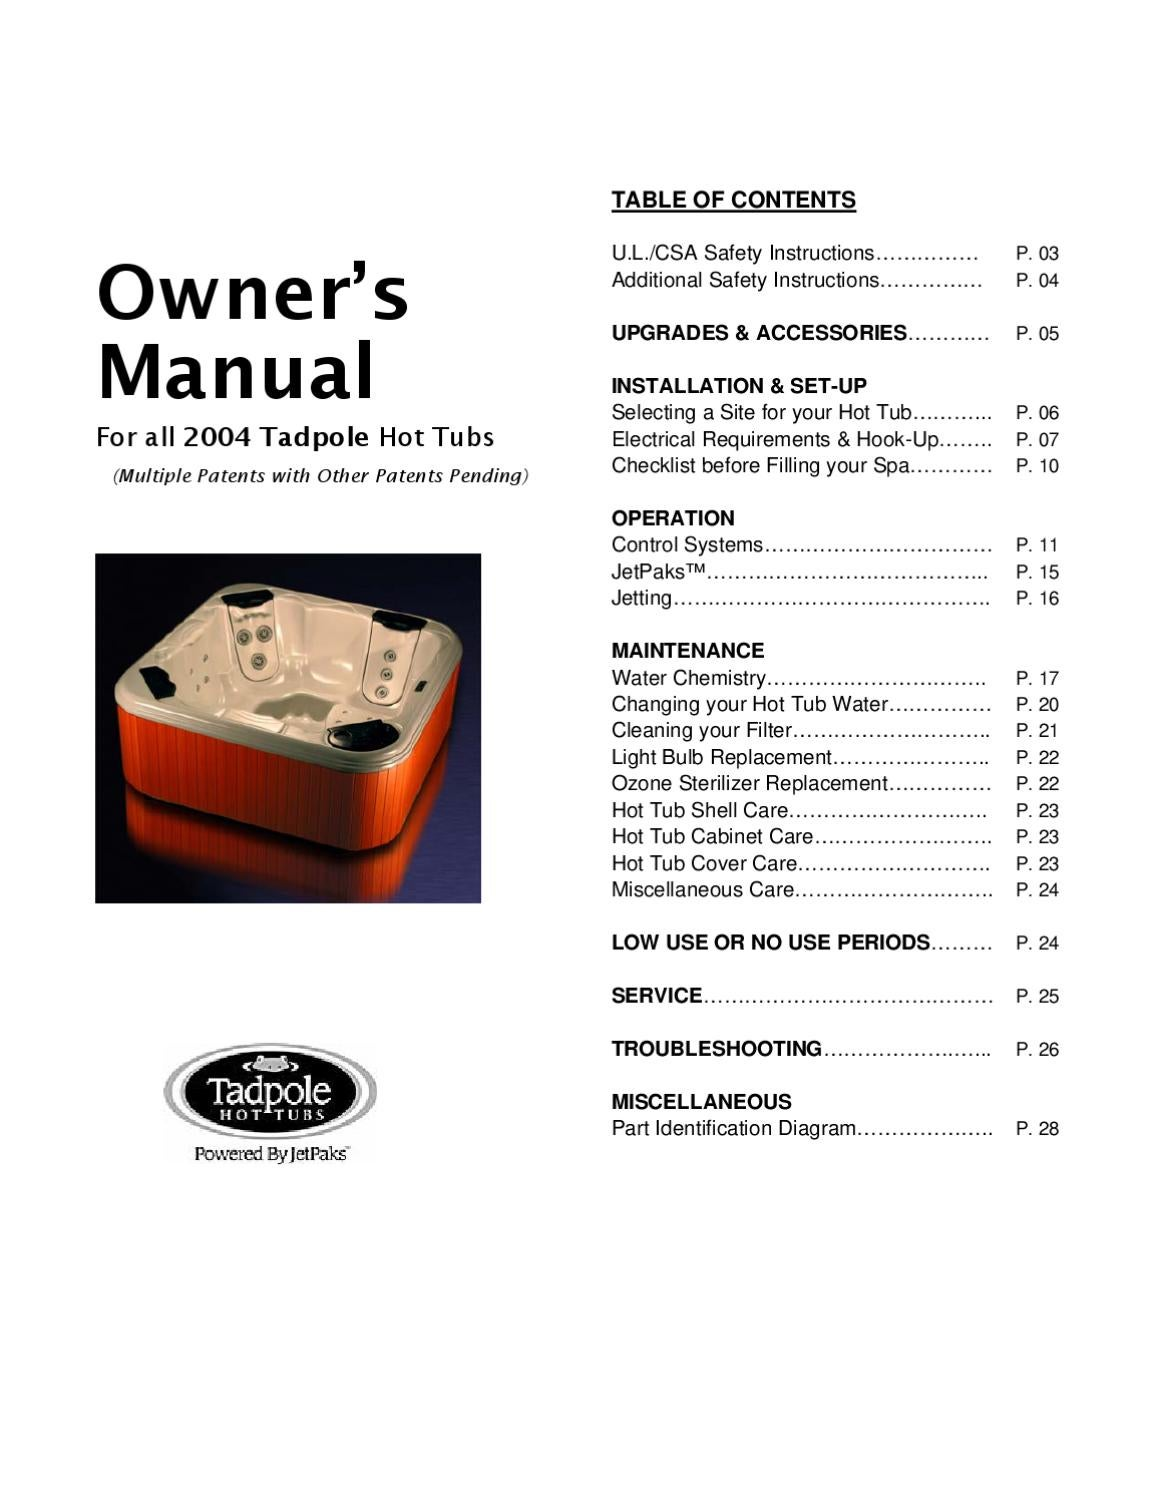 Tadpole Hot Tub Owners Manual 2004 By Envirosmarte Tubs Swim Electrical Wiring Diagram 120vac Spas Issuu